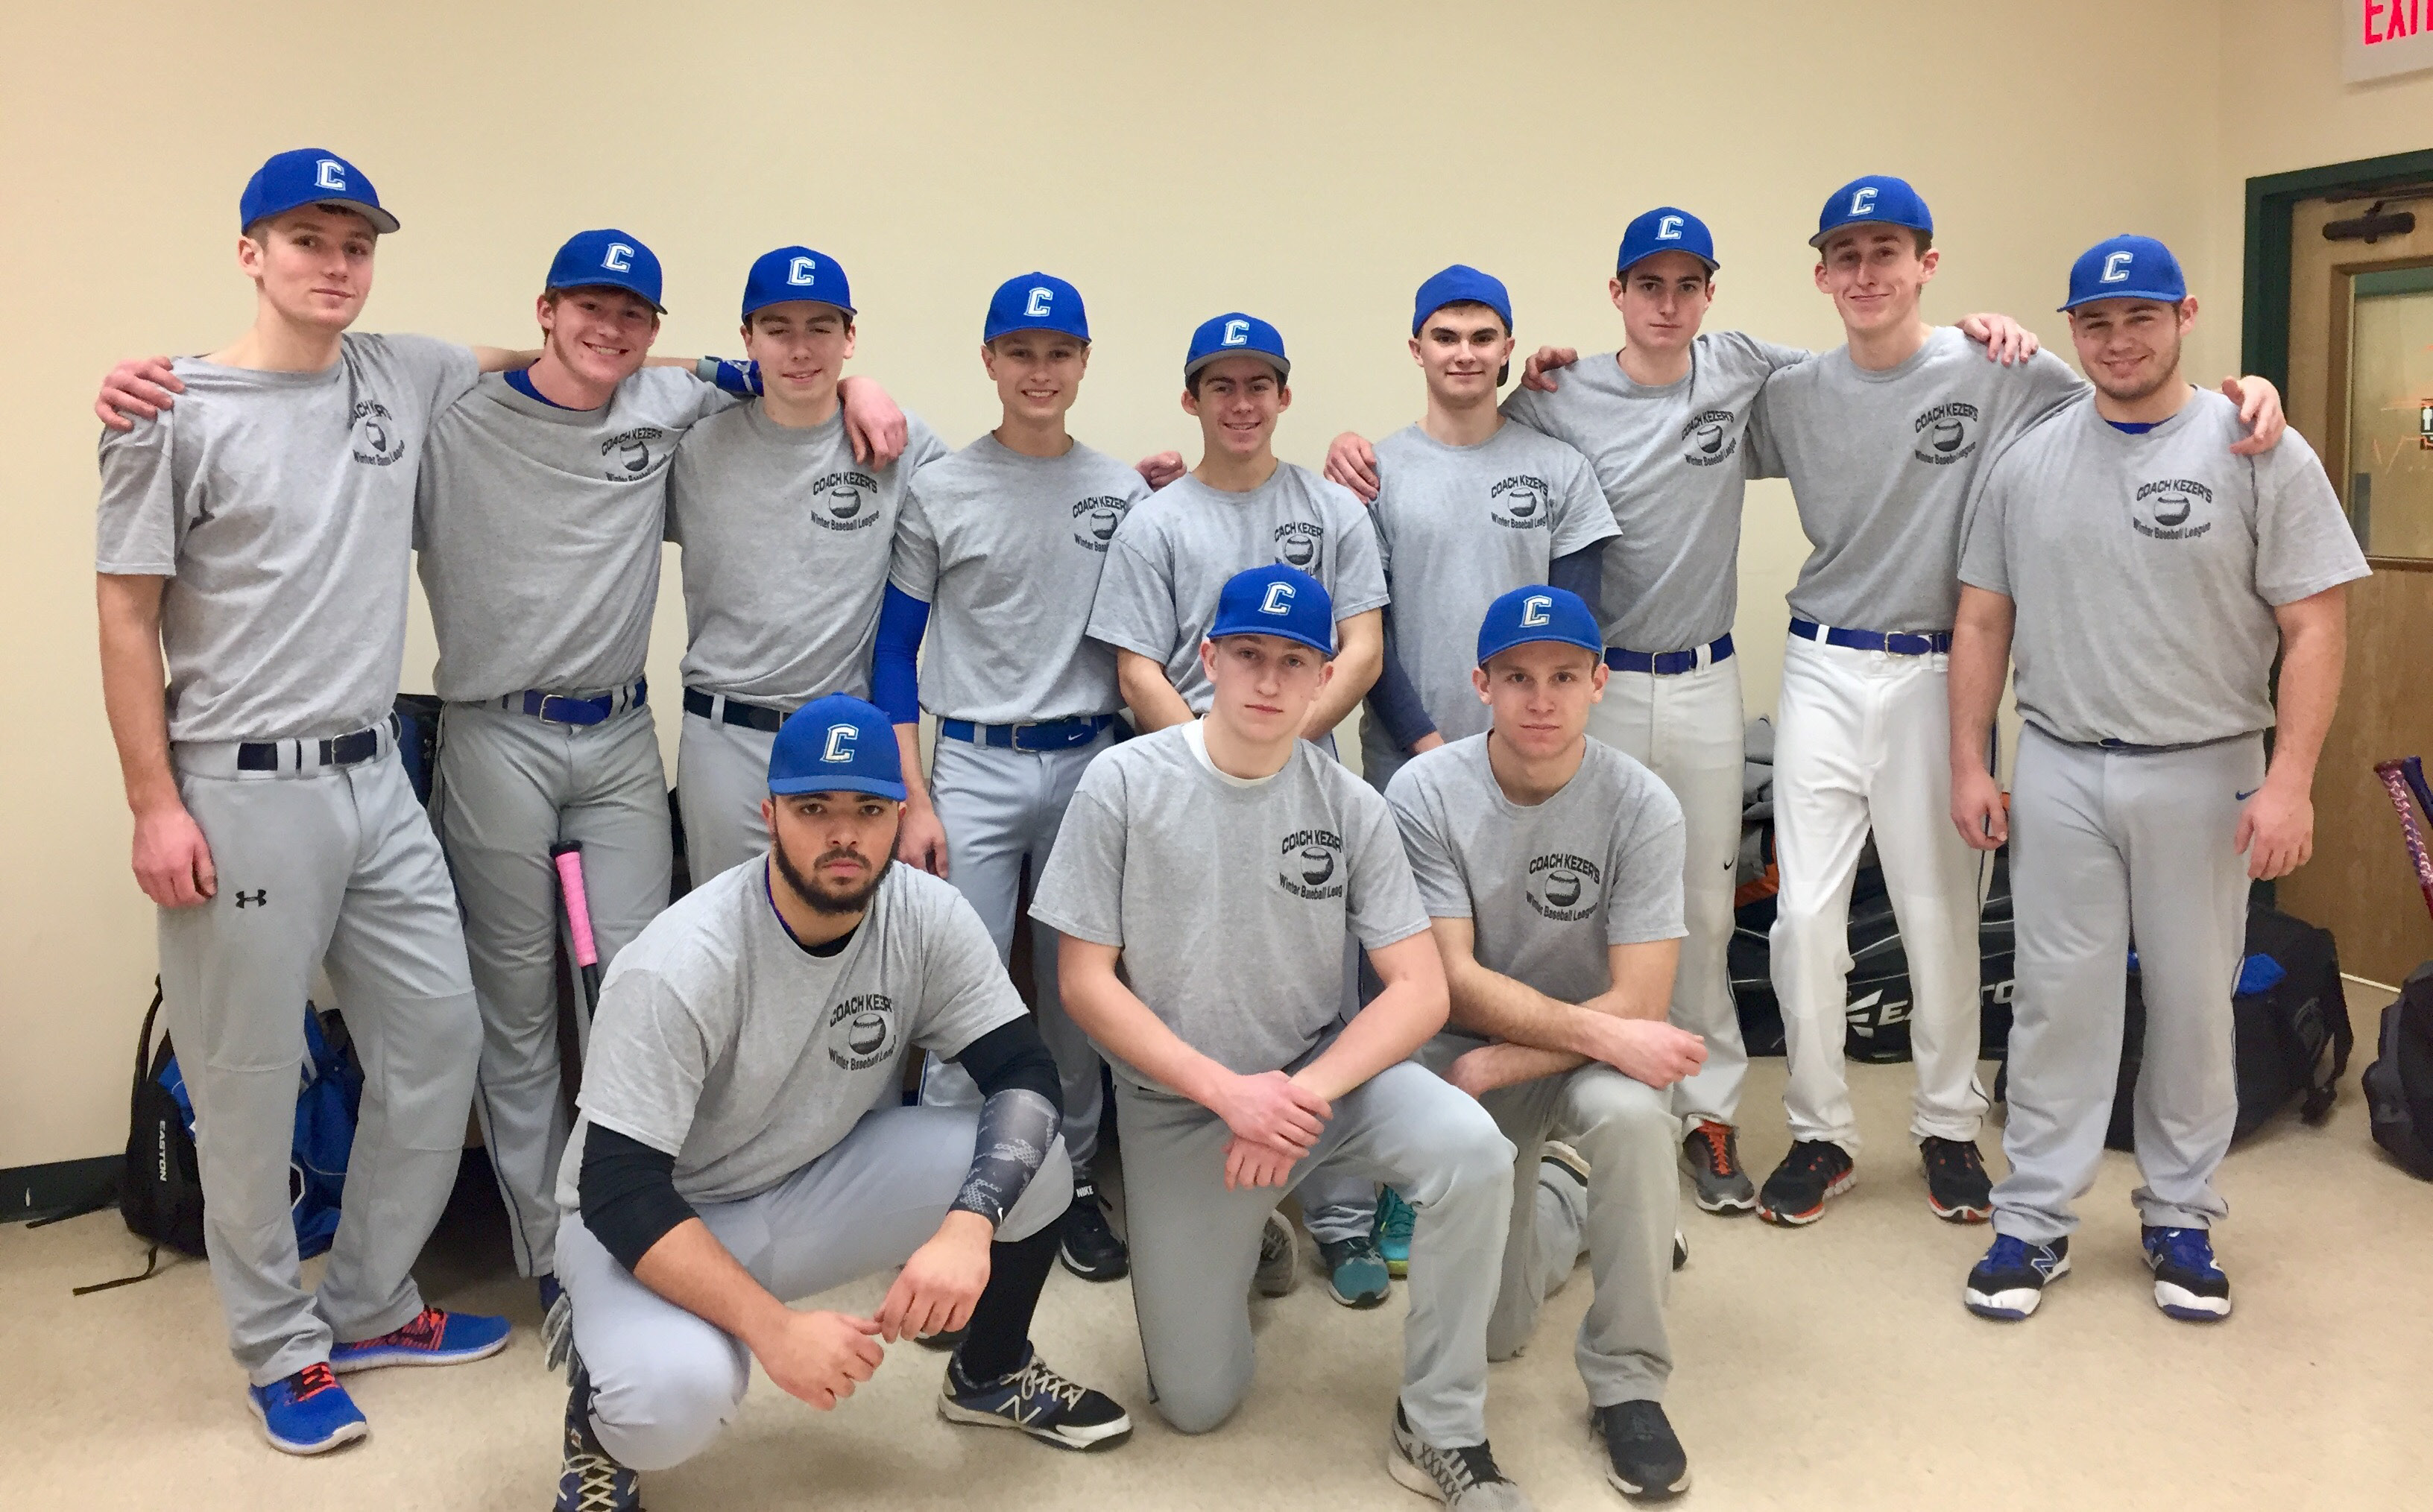 Several Coginchaug Regional High School baseball players are participating in Coach Kezer